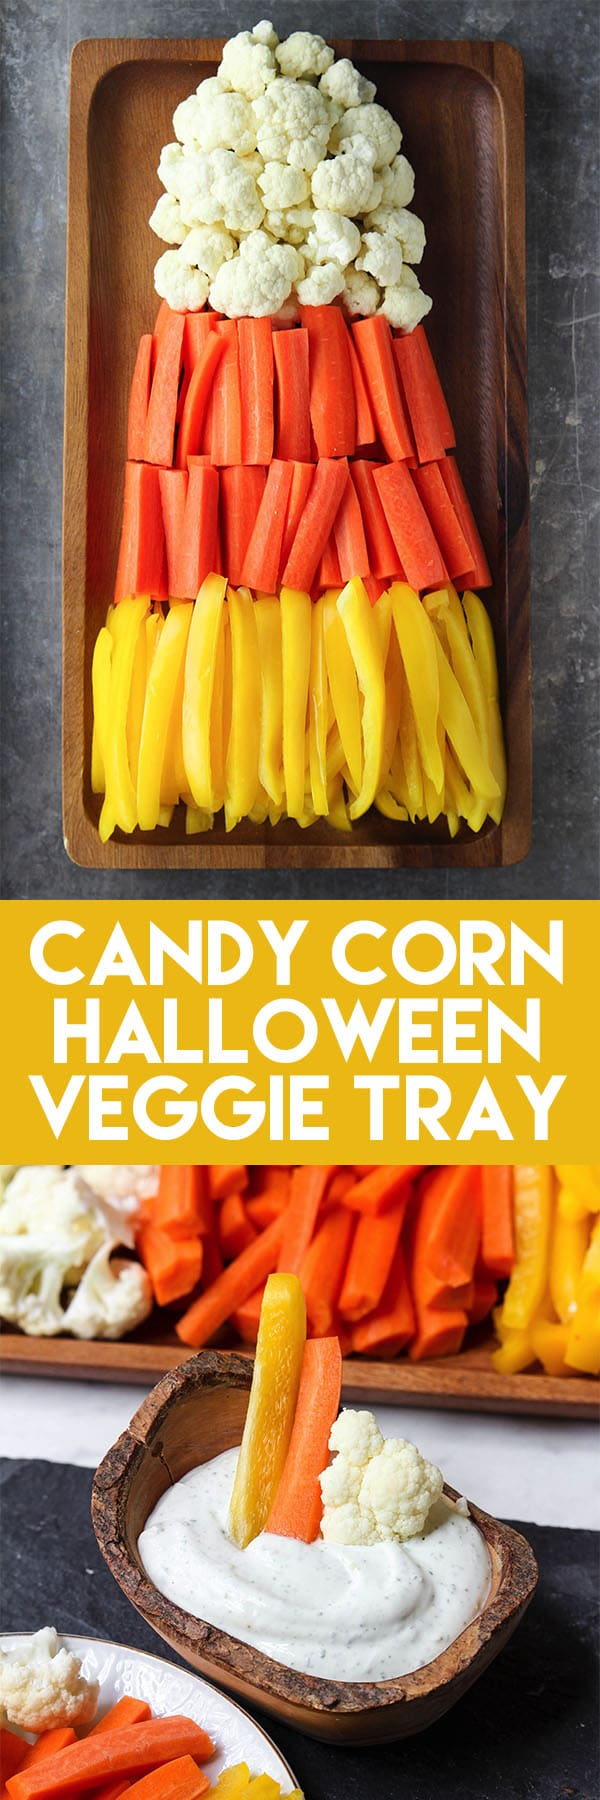 This Candy Corn Halloween Veggie Tray is such a fun option for a healthy Halloween treat! Add a bowl of dip and you have yourself a super easy Halloween party food! #halloweenfood #halloweenpartyfood #halloweenveggietray #healthyhalloweenfood